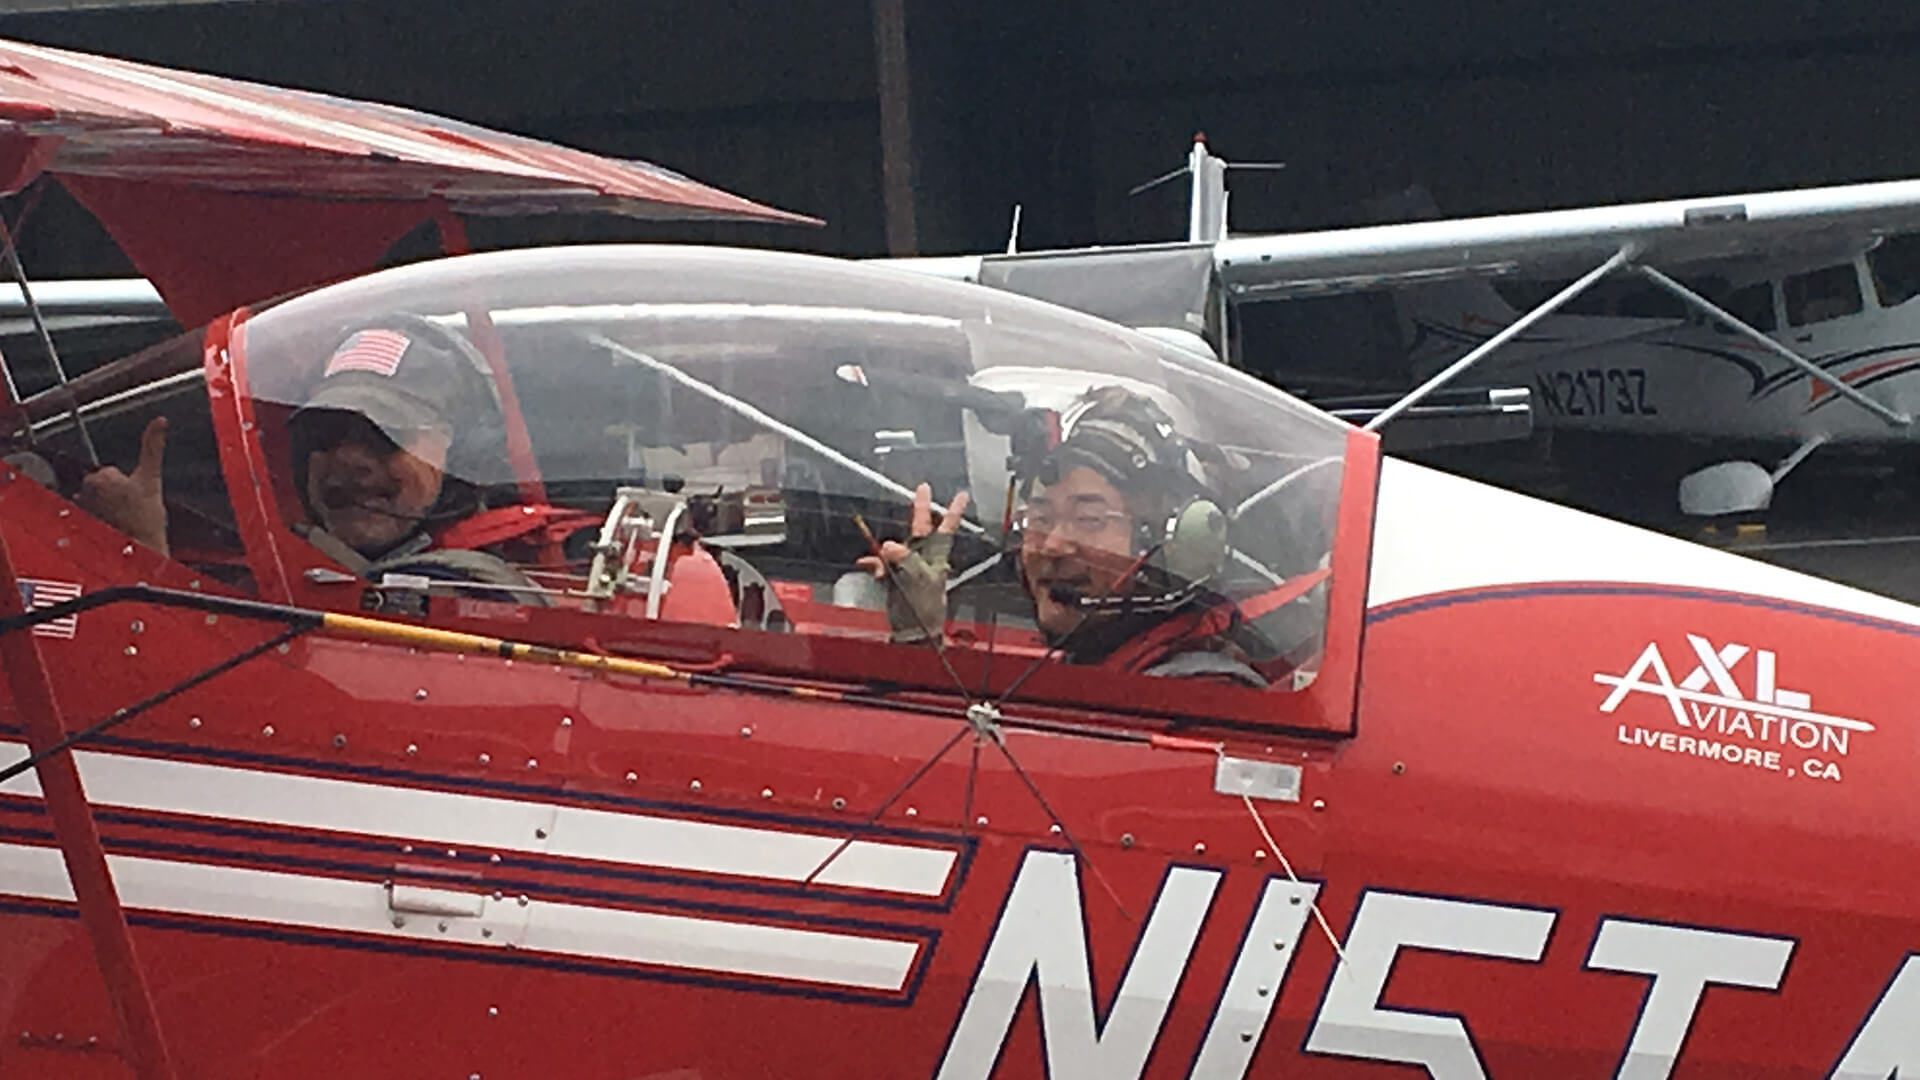 San Francisco Bay Area Tailwheel Airplane Flight Training - Book a Certified Flying Instructor for Upset Avoidance & Recovery Training, Aerobatic Flight Training, Formation Training, & Air Combat Maneuvering Training